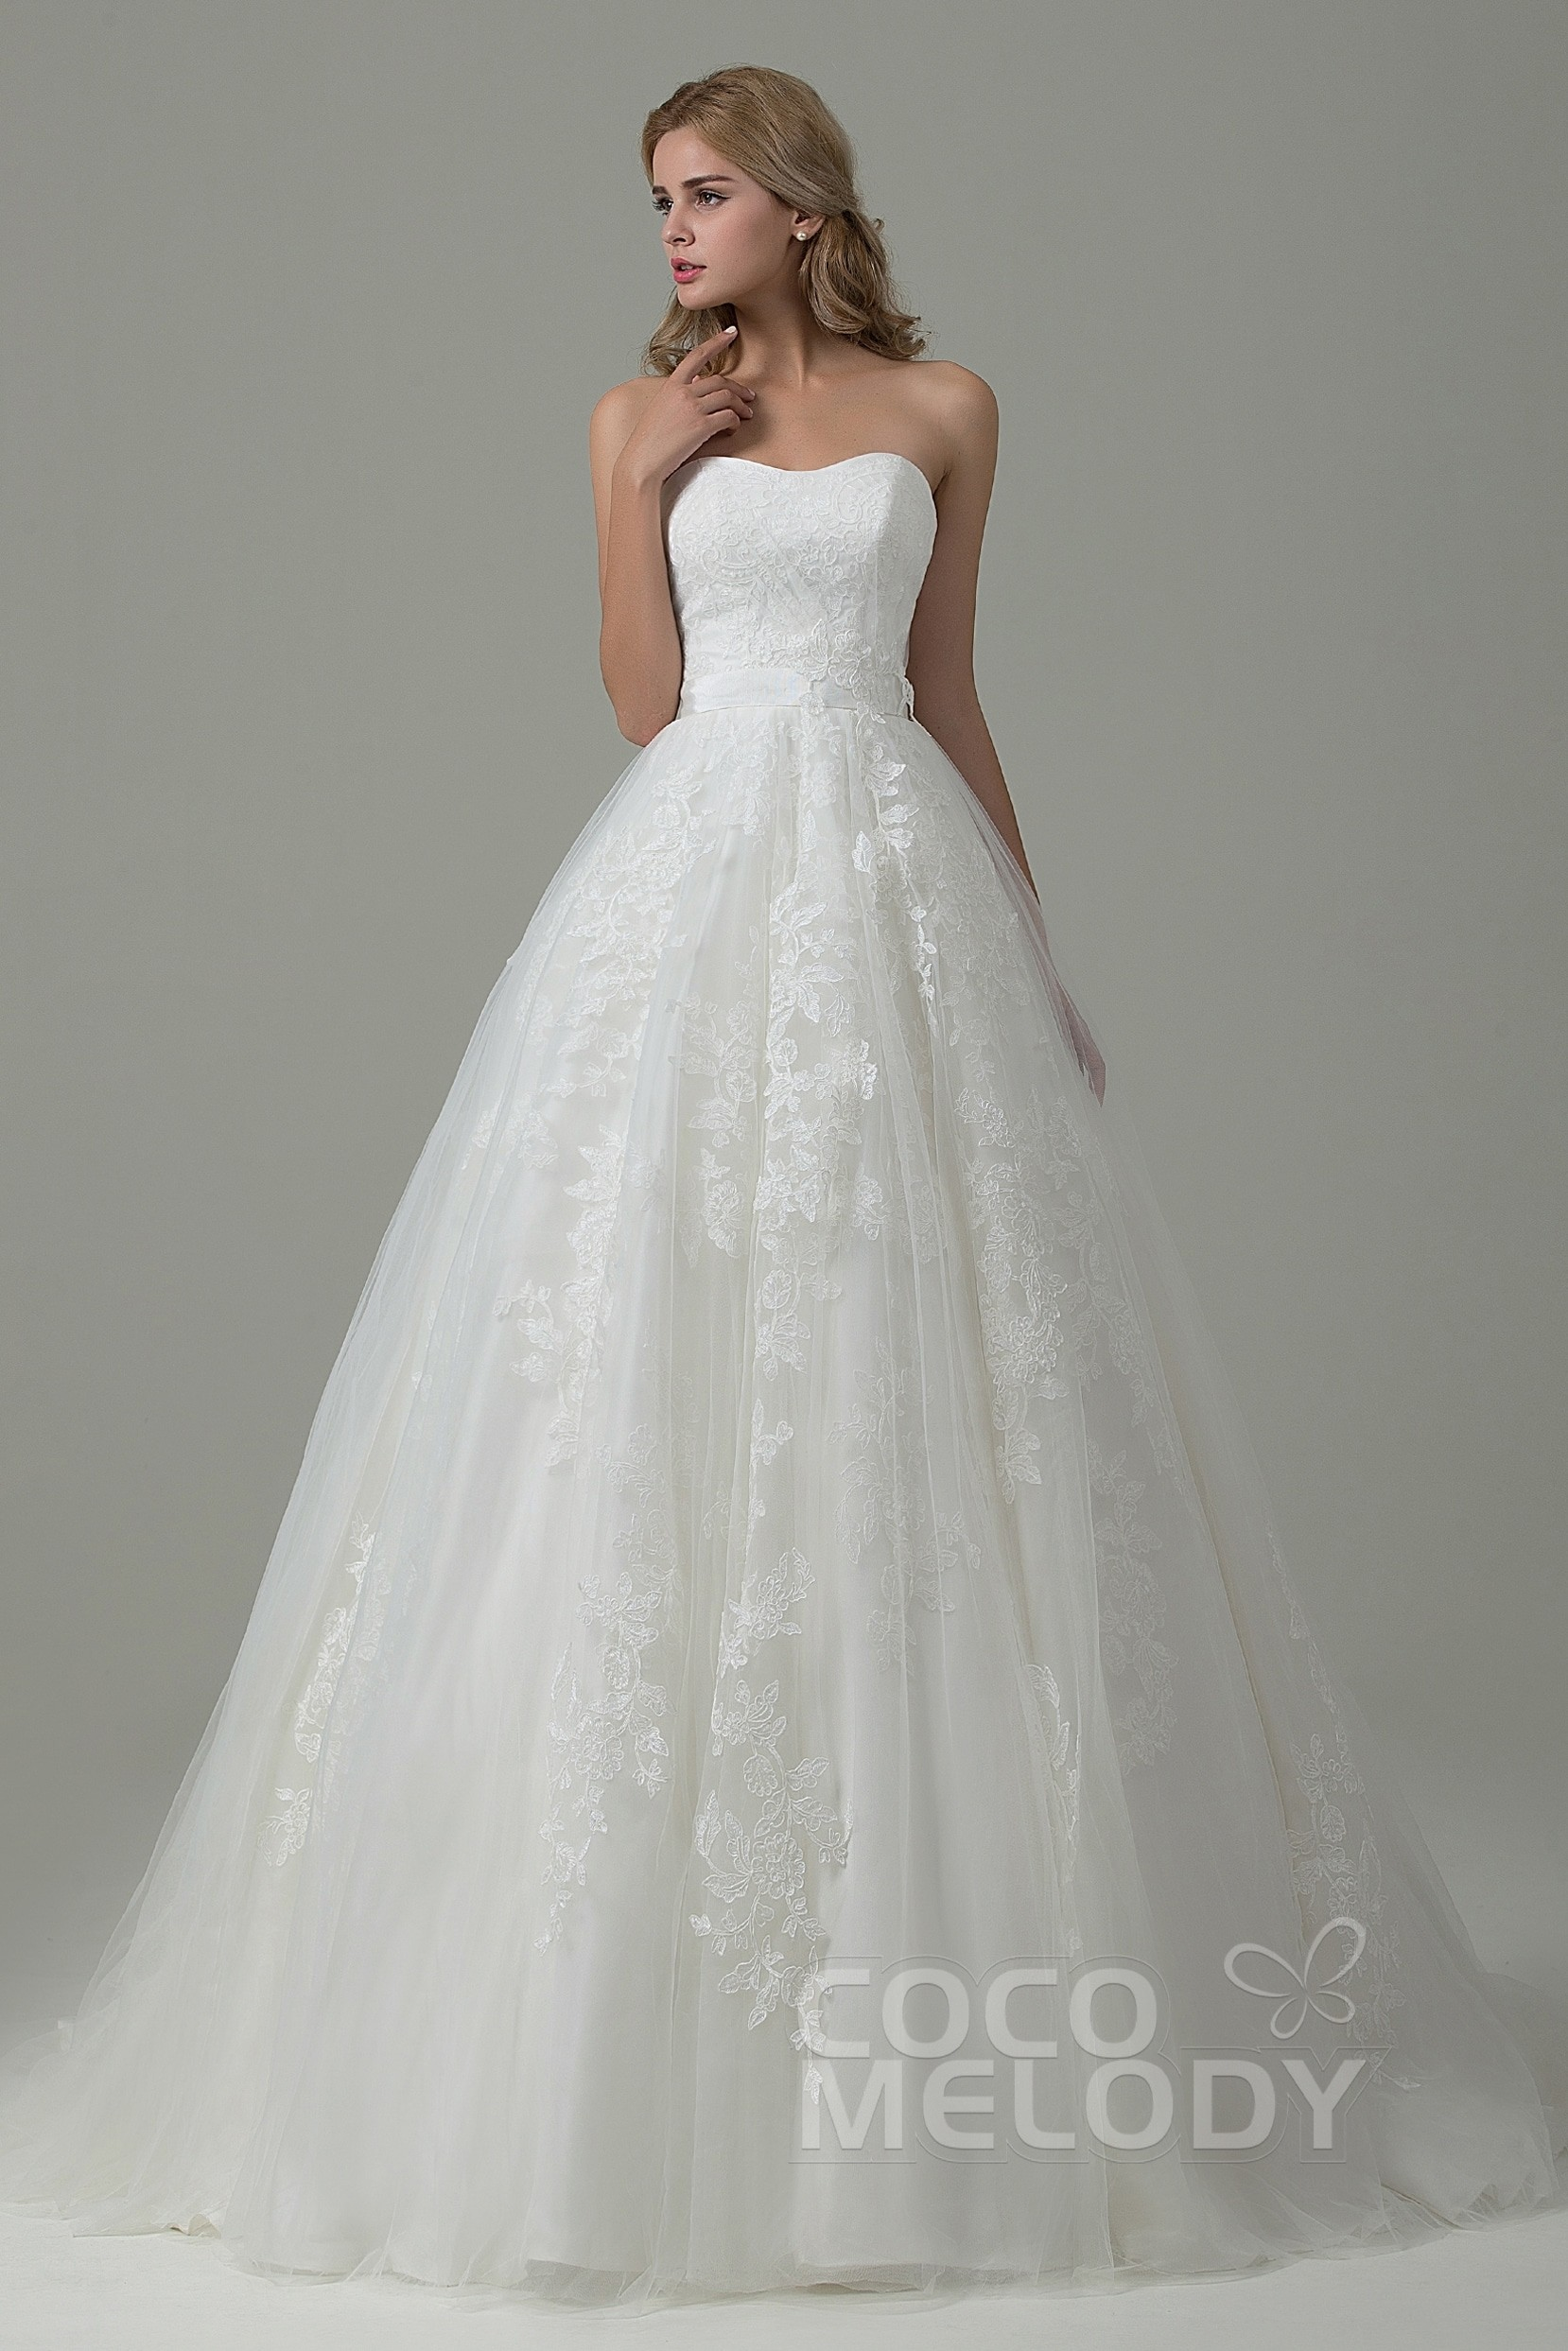 A-Line Sweetheart Tulle Lace Wedding Dress B14E3A024 | Cocomelody